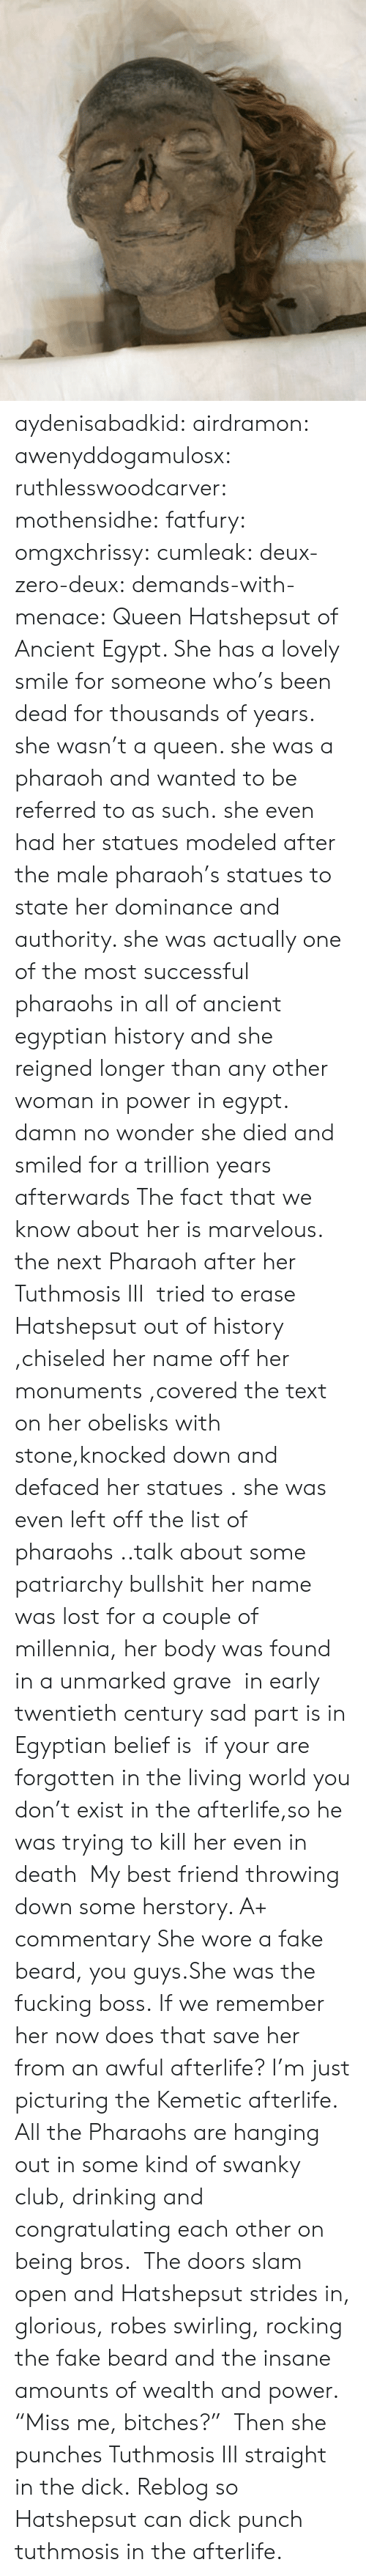 """congratulating: aydenisabadkid:  airdramon:  awenyddogamulosx:  ruthlesswoodcarver:  mothensidhe:  fatfury:  omgxchrissy:  cumleak:  deux-zero-deux:  demands-with-menace:  Queen Hatshepsut of Ancient Egypt. She has a lovely smile for someone who's been dead for thousands of years.  she wasn't a queen. she was a pharaoh and wanted to be referred to as such.she even had her statues modeled after the male pharaoh's statues to state her dominance and authority. she was actually one of the most successful pharaohs in all of ancient egyptian history and she reigned longer than any other woman in power in egypt.  damn no wonder she died and smiled for a trillion years afterwards  The fact that we know about her is marvelous. the next Pharaoh after her Tuthmosis III tried to erase Hatshepsut out of history ,chiseled her name off her monuments ,covered the text on her obelisks with stone,knocked down and defaced her statues . she was even left off the list of pharaohs ..talk about some patriarchy bullshit her name was lost for a couple of millennia, her body was found in a unmarked grave in early twentieth century sad part is in Egyptian belief is if your are forgotten in the living world you don't exist in the afterlife,so he was trying to kill her even in death  My best friend throwing down some herstory. A+ commentary  She wore a fake beard, you guys.She was the fucking boss.  If we remember her now does that save her from an awful afterlife?  I'm just picturing the Kemetic afterlife. All the Pharaohs are hanging out in some kind of swanky club, drinking and congratulating each other on being bros. The doors slam open and Hatshepsut strides in, glorious, robes swirling, rocking the fake beard and the insane amounts of wealth and power. """"Miss me, bitches?""""  Then she punches Tuthmosis III straight in the dick.   Reblog so Hatshepsut can dick punch tuthmosis in the afterlife."""